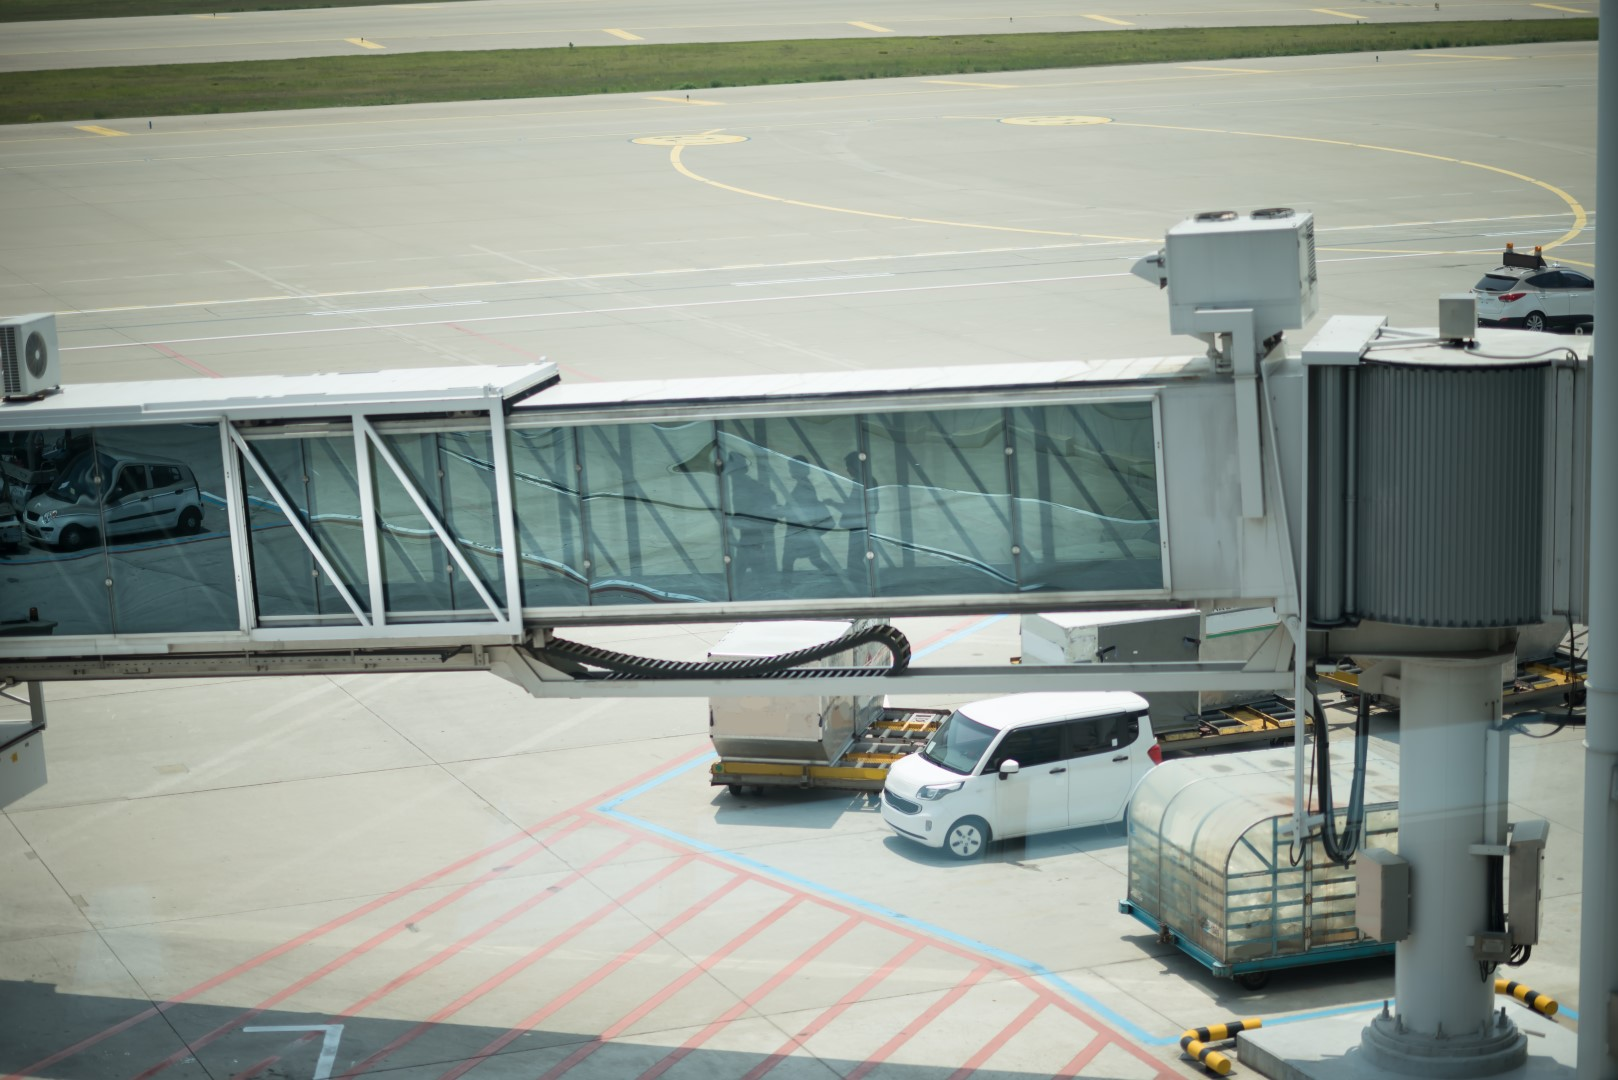 Valley airport claims service 'significantly improved'